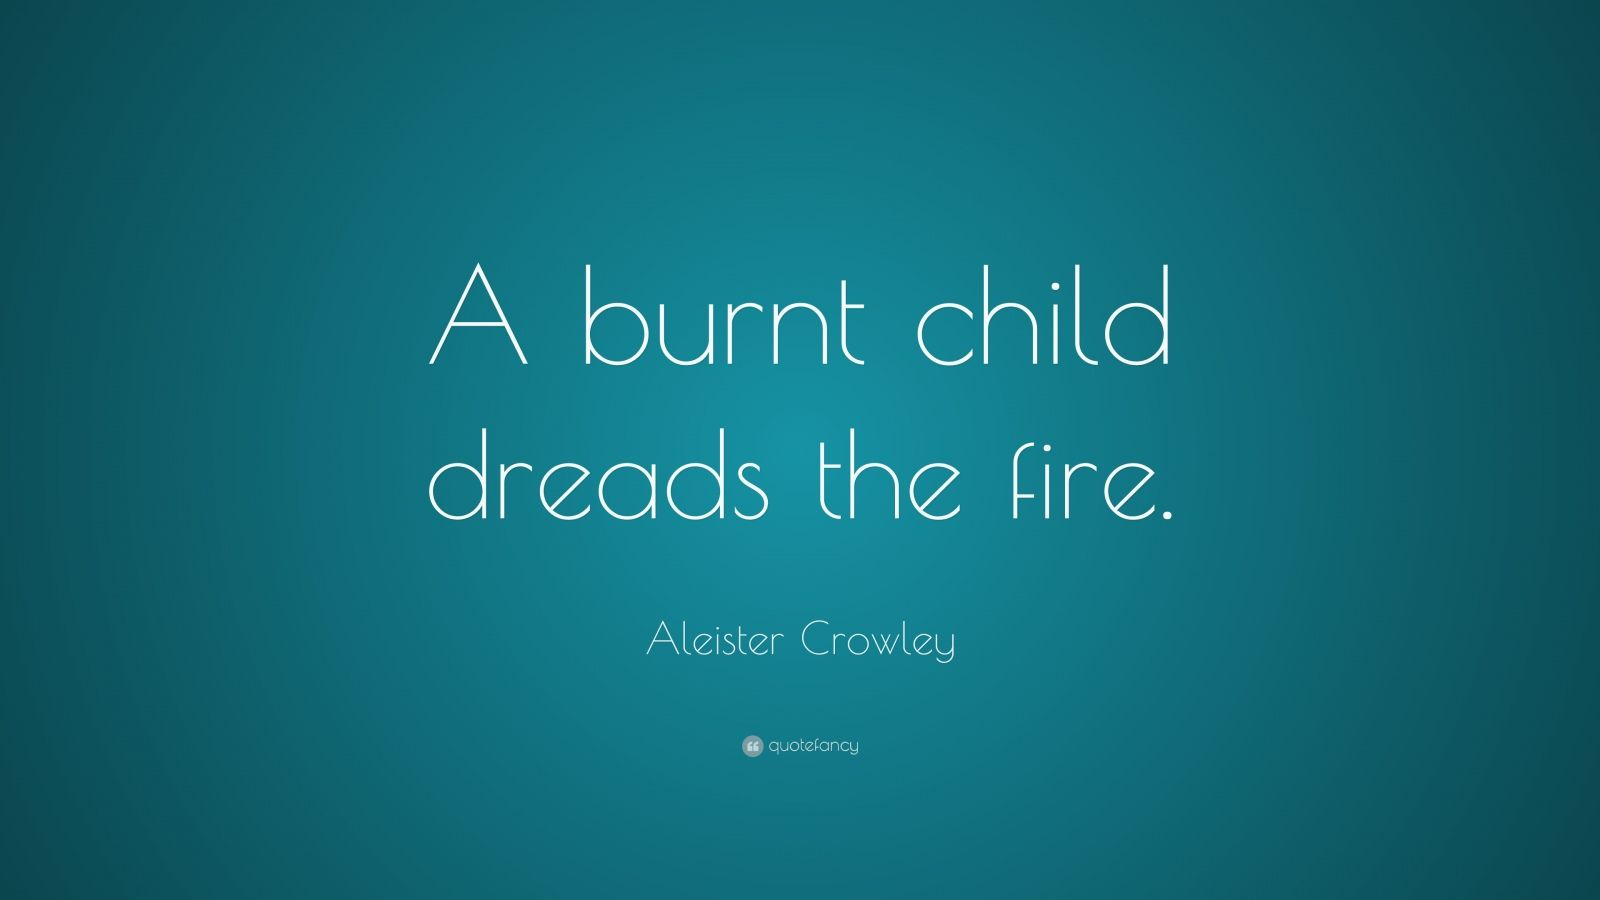 a burnt child dreads fire Fire is a phenomenon of the heat and light energy released during a chemical  reaction, in particular a combustion reaction  the burnt child dreads the fire.